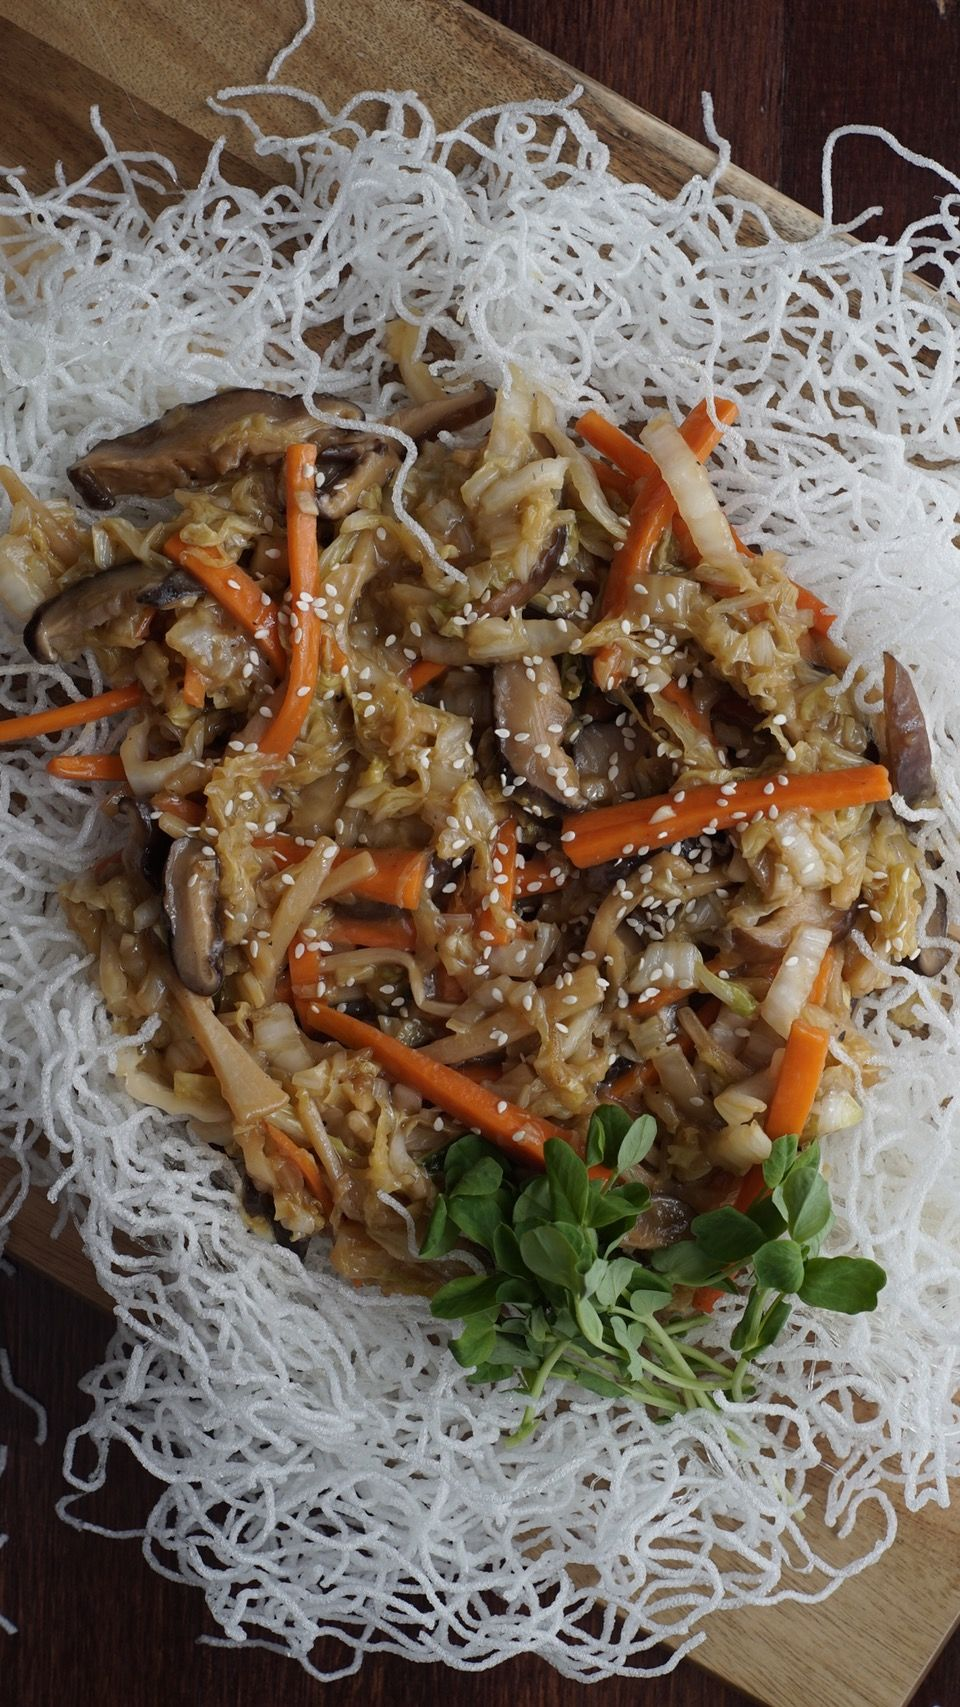 Recipe with video instructions: Witness Julie make puffed vermicelli for the first time. Ingredients: Vermicelli/Glass Noodles, Vegetable oil, 2 cloves garlic, minced, 10 approx. dried shiitake mushrooms, soaked until softened and thinly sliced, 2 medium carrots, julienned , 1/2 cup canned bamboo shoots, julienned , A small napa cabbage, julienned (about 5 cups), ¼ cup soy sauce, 2 tbsp sesame oil, Salt and Pepper, A pinch of sugar, 2 tablespoons cornstarch, dissolved in 2 tablespoo...